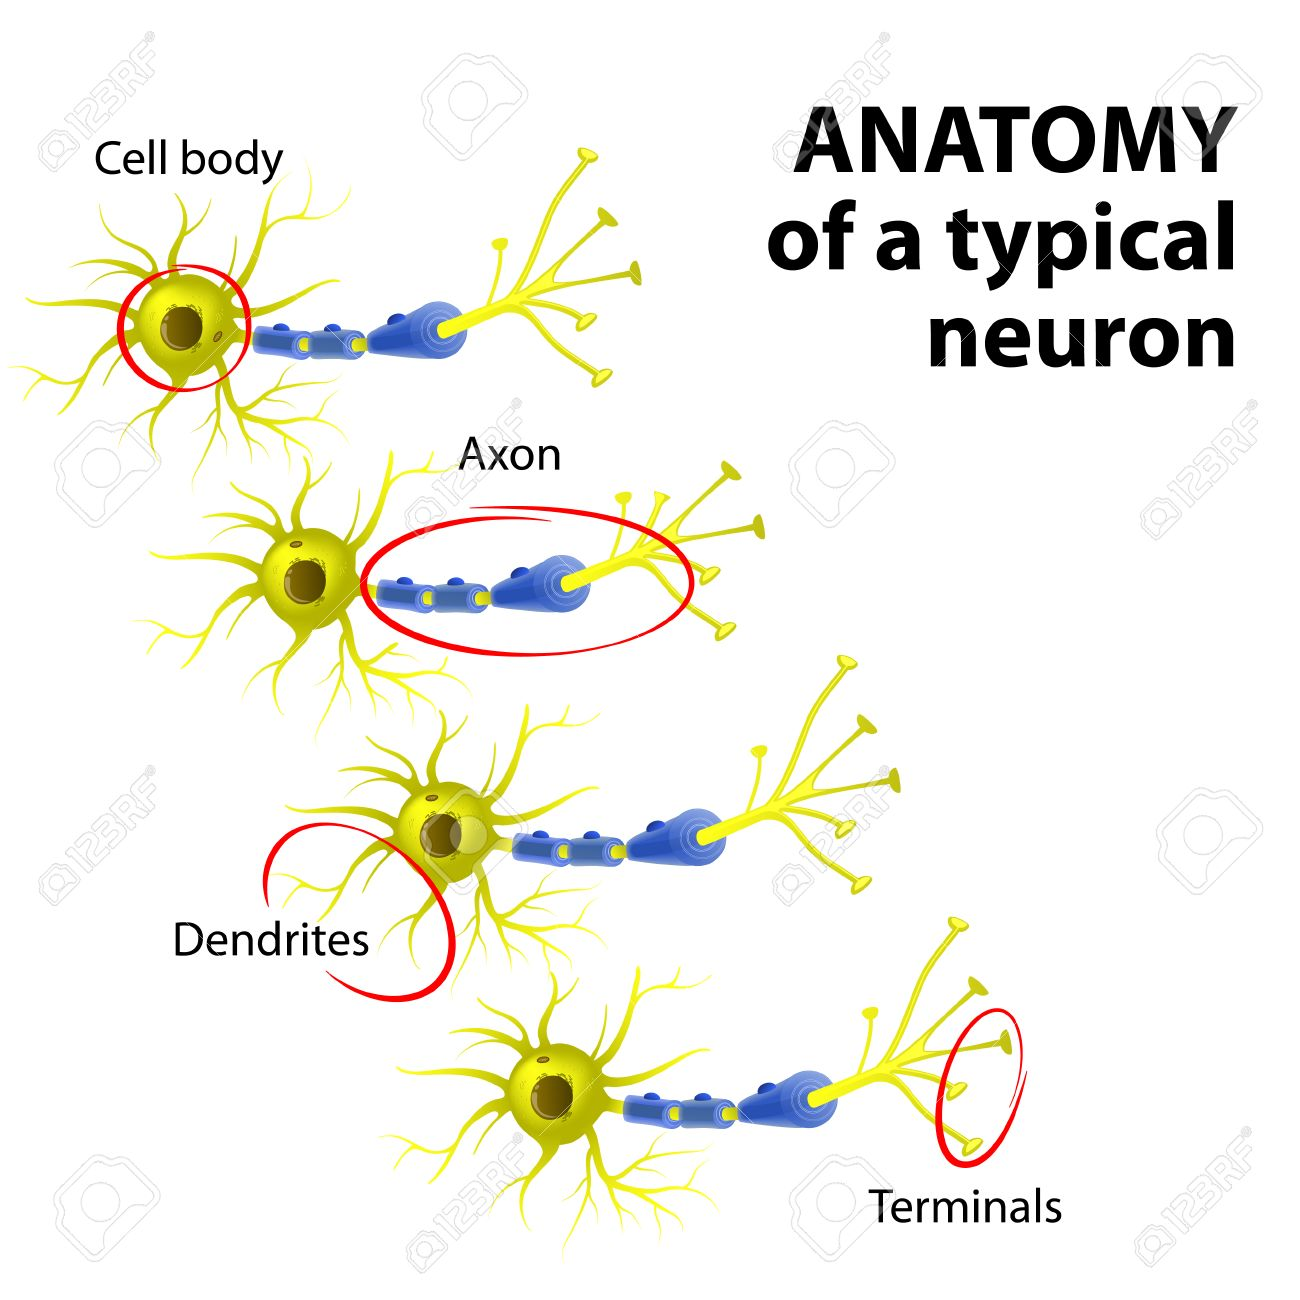 Anatomy Of A Typical Multipolar Neuron: Dendrite, Cell Body (soma ...